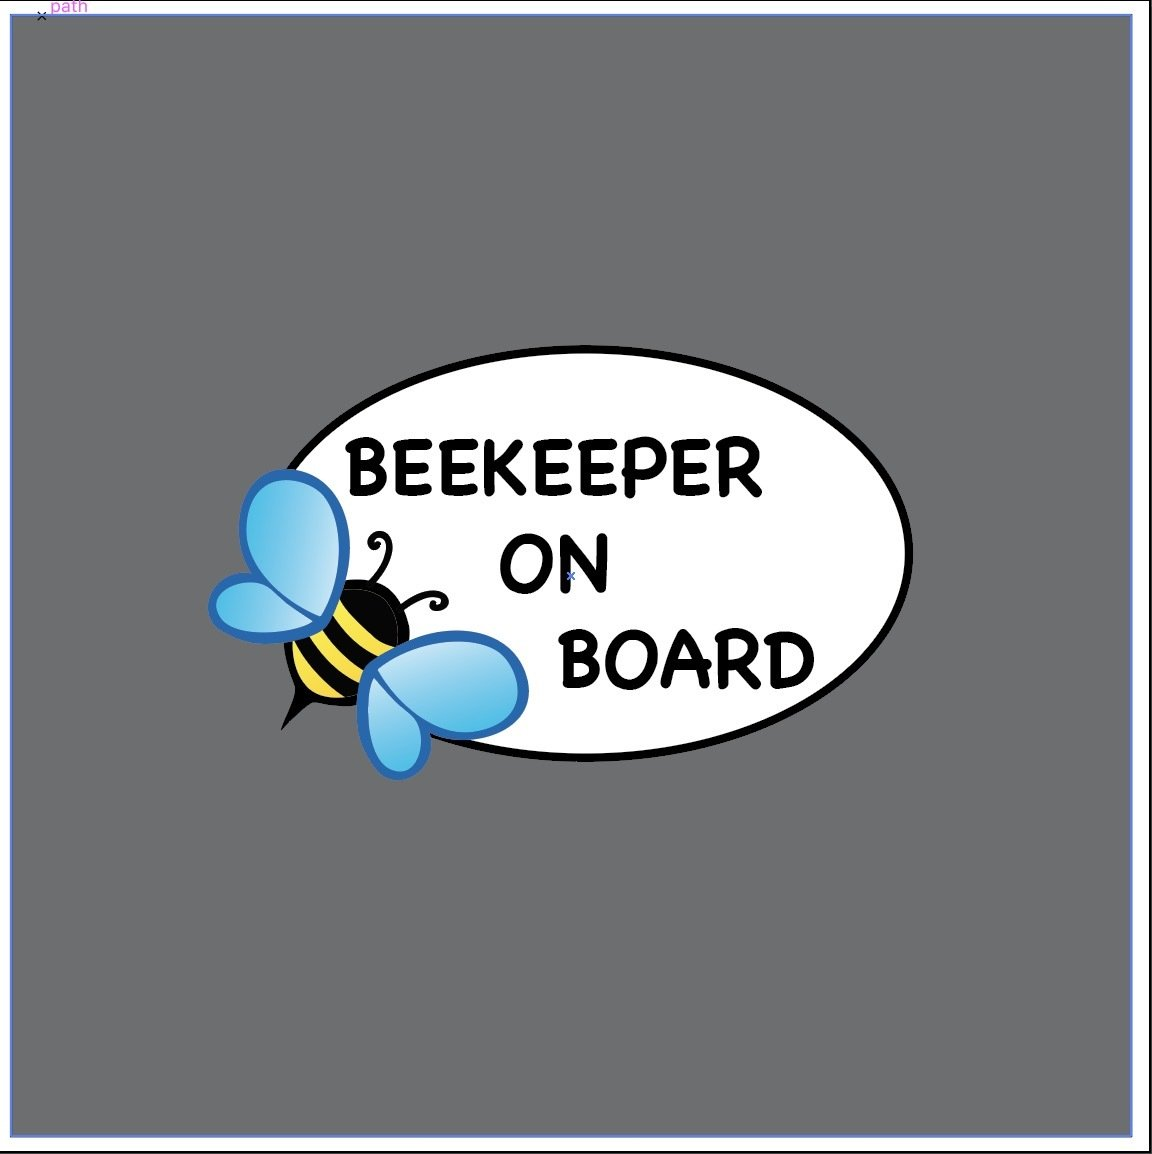 BEEKEEPER on board